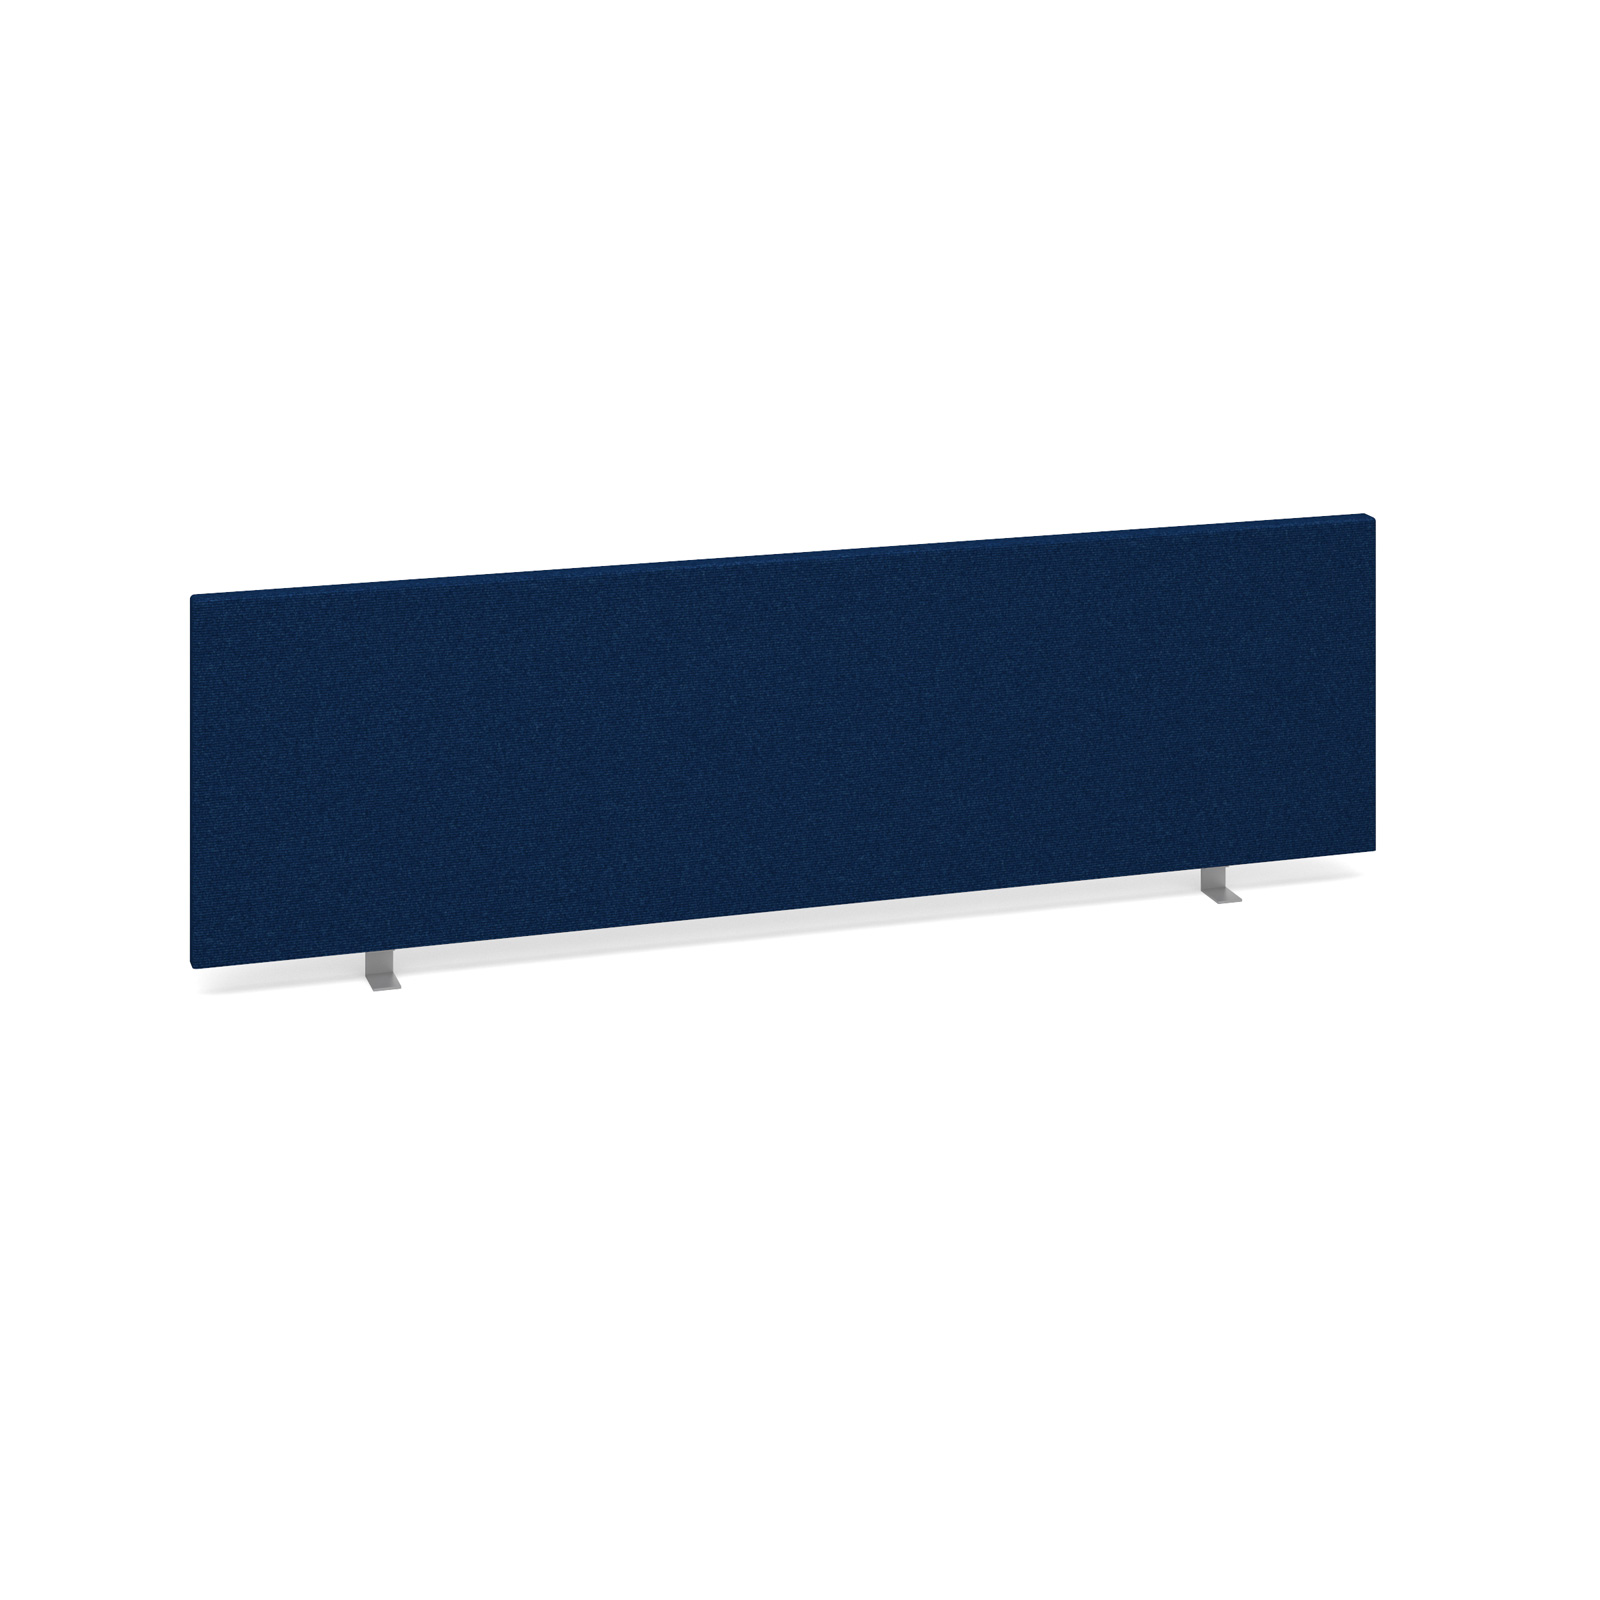 Straight Tops Straight desktop fabric screen 1400mm x 400mm - blue